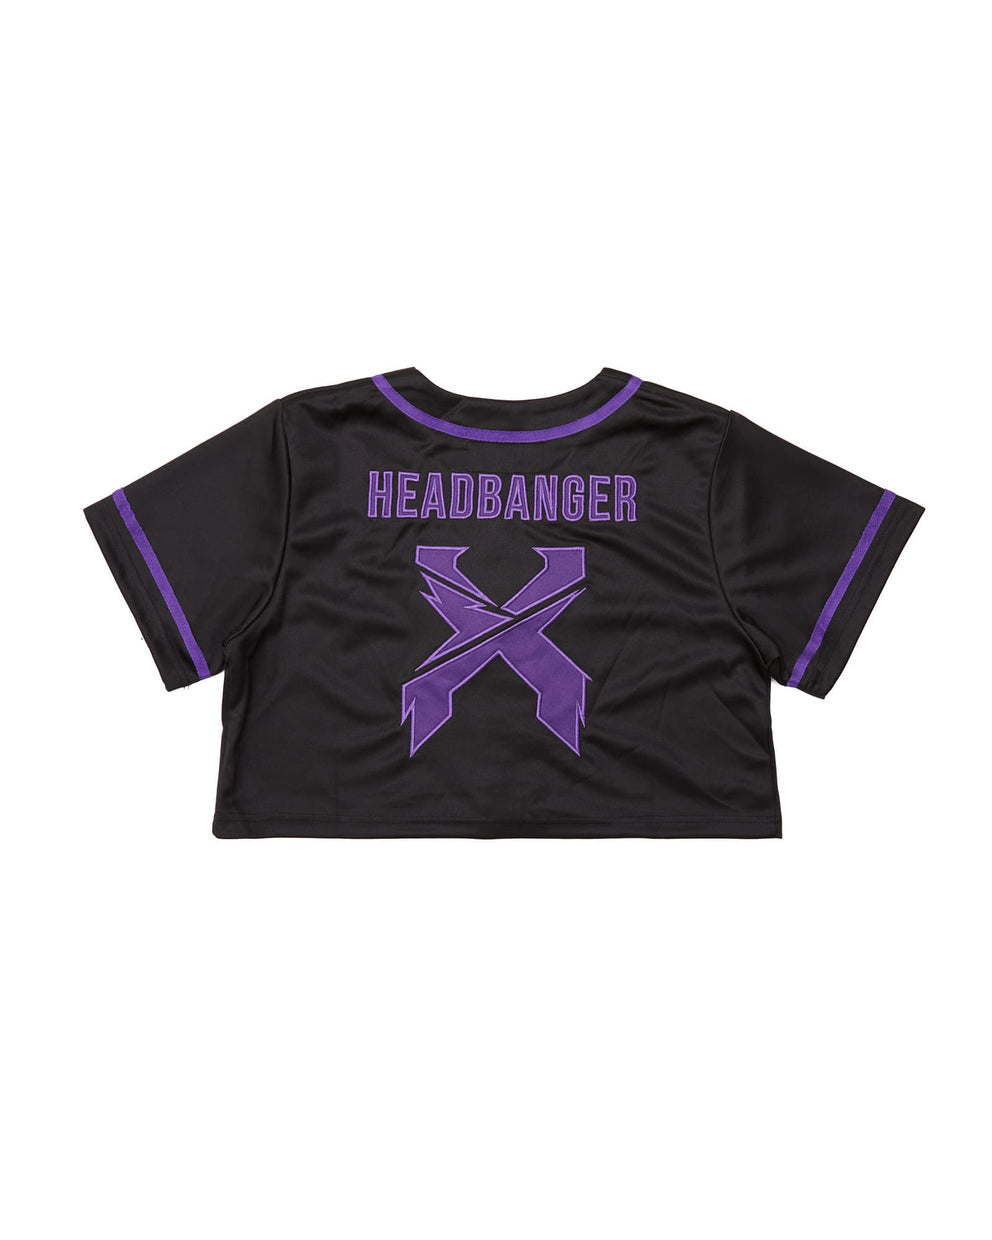 Excision Women's Crop Top Baseball Jersey - Black/Purple